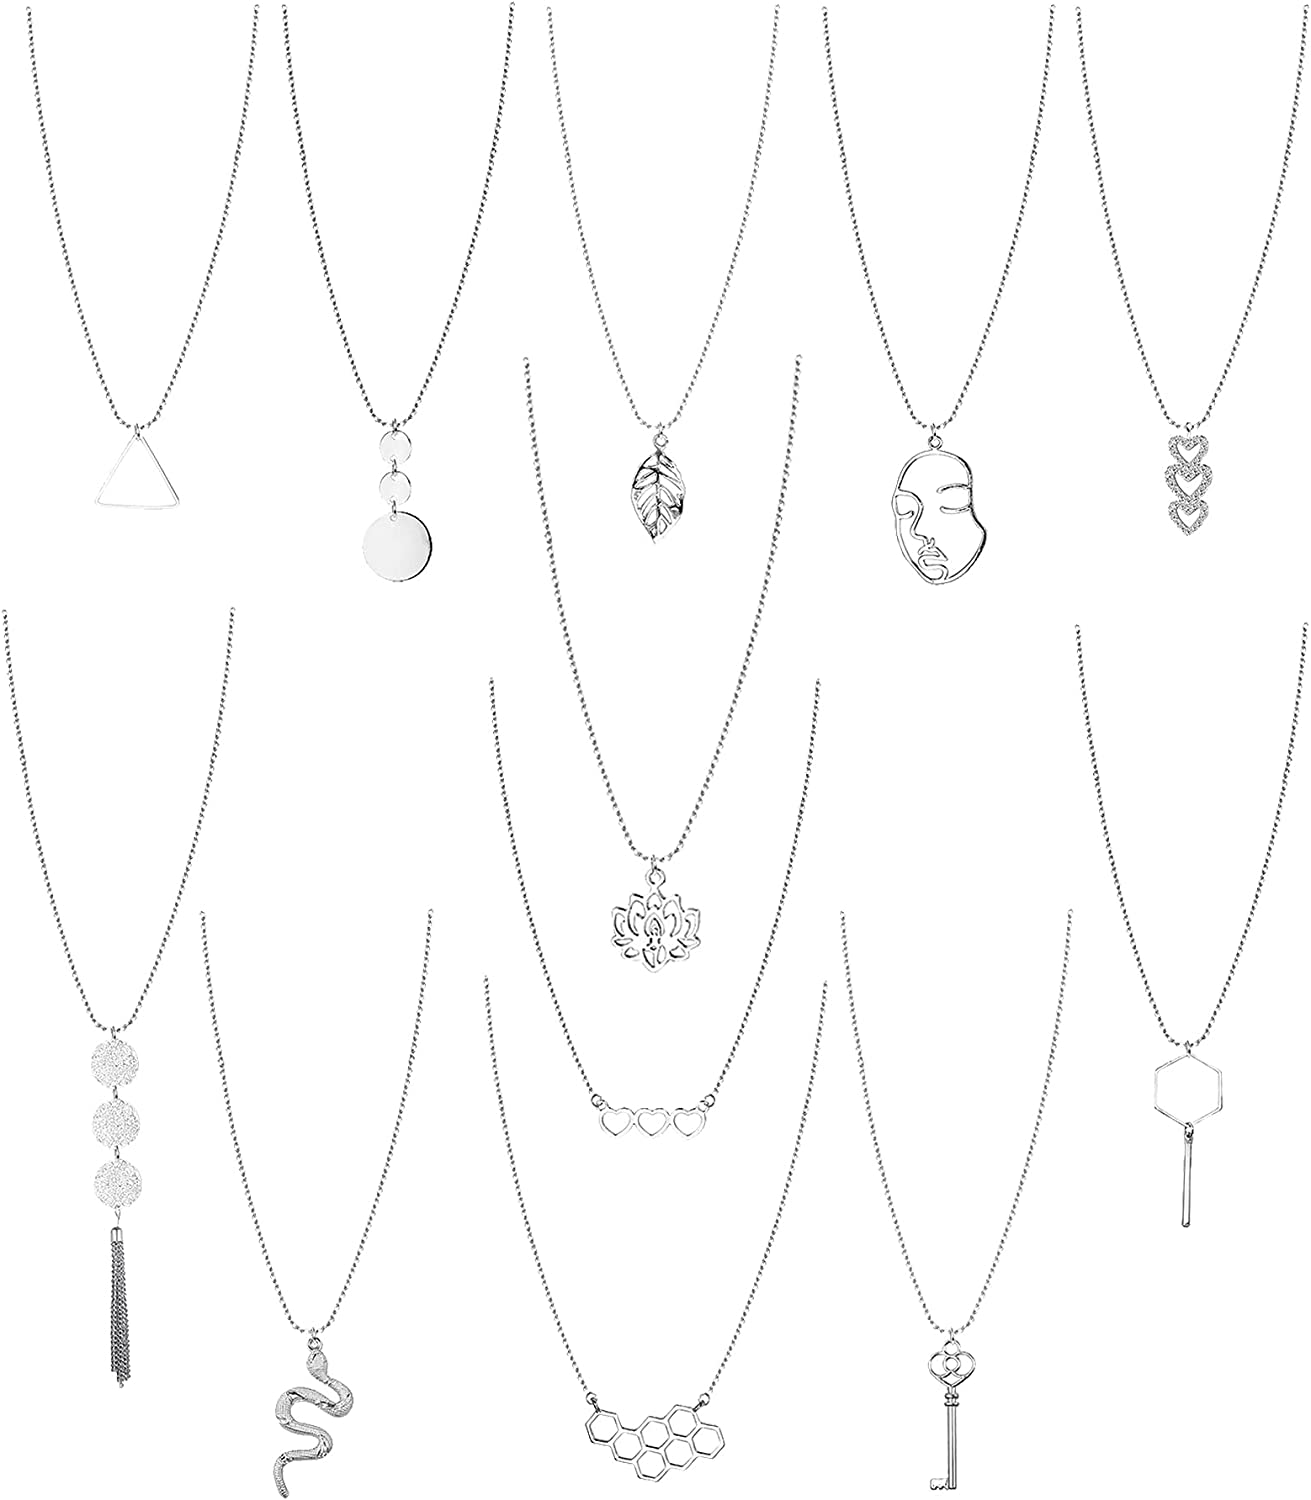 Ubjuliwa 12 Pcs Long Pendant Necklaces for Women Y-Shaped Statement Necklace Simple Heart Leaf Circle Tassel Feather Sweater Necklace Set Fashion Jewelry